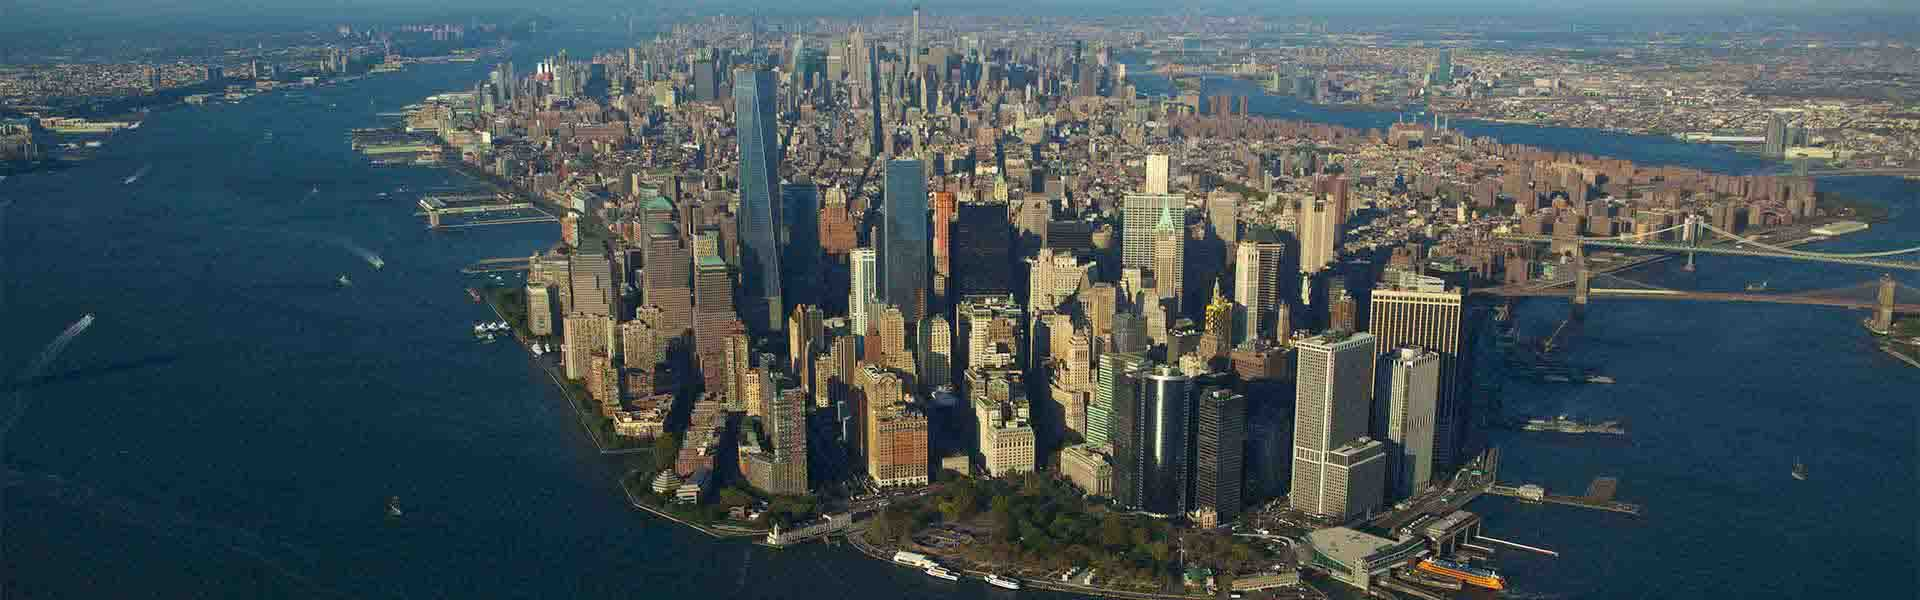 Aerial view of Manhattan skyline